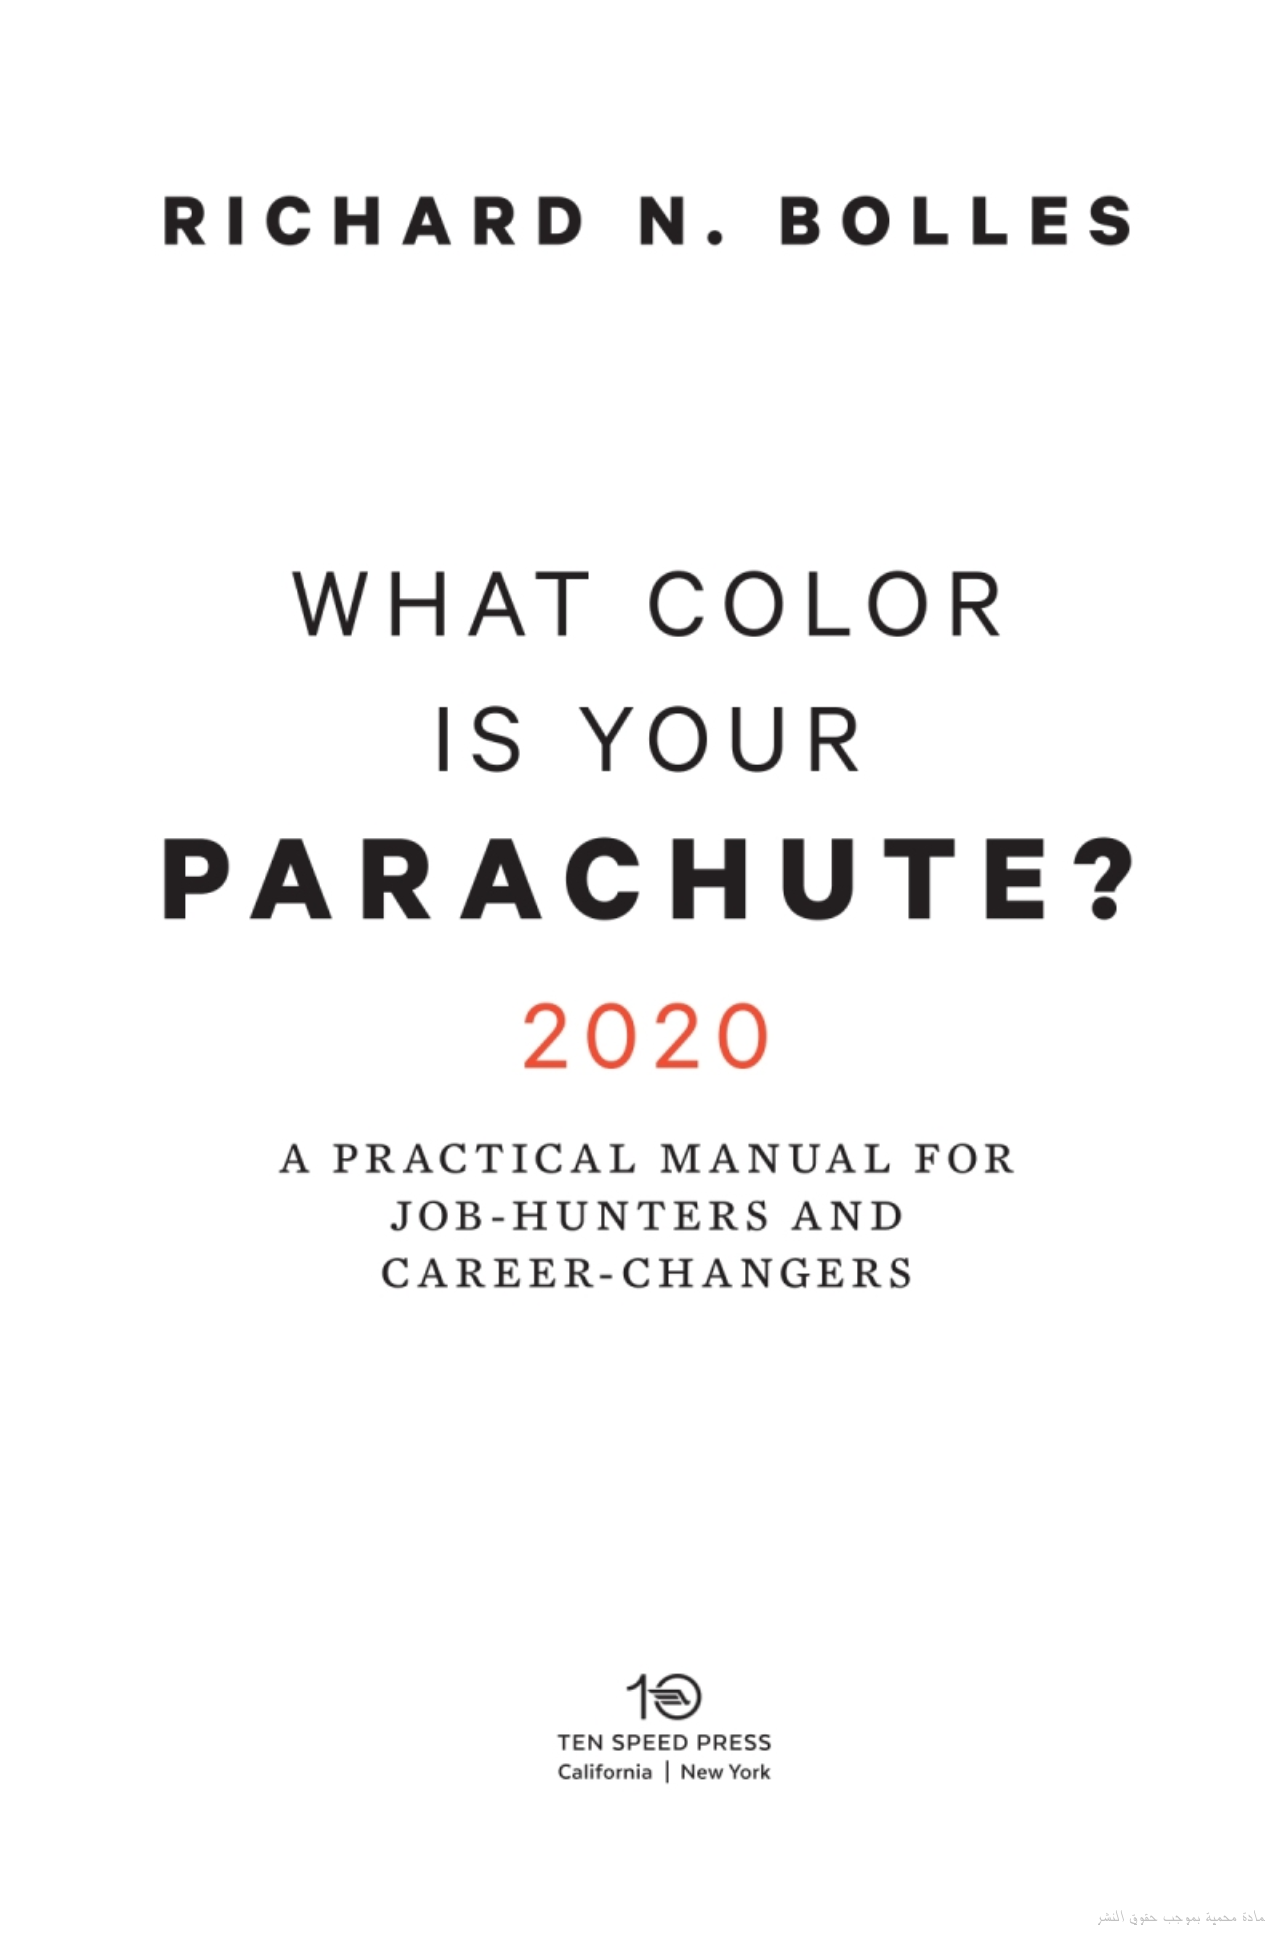 What Color Is Your Parachute 2020 A Practical Manual For Job Hunters And Richard N Bolles Google Business And Economics Writing Tips Marketing Jobs